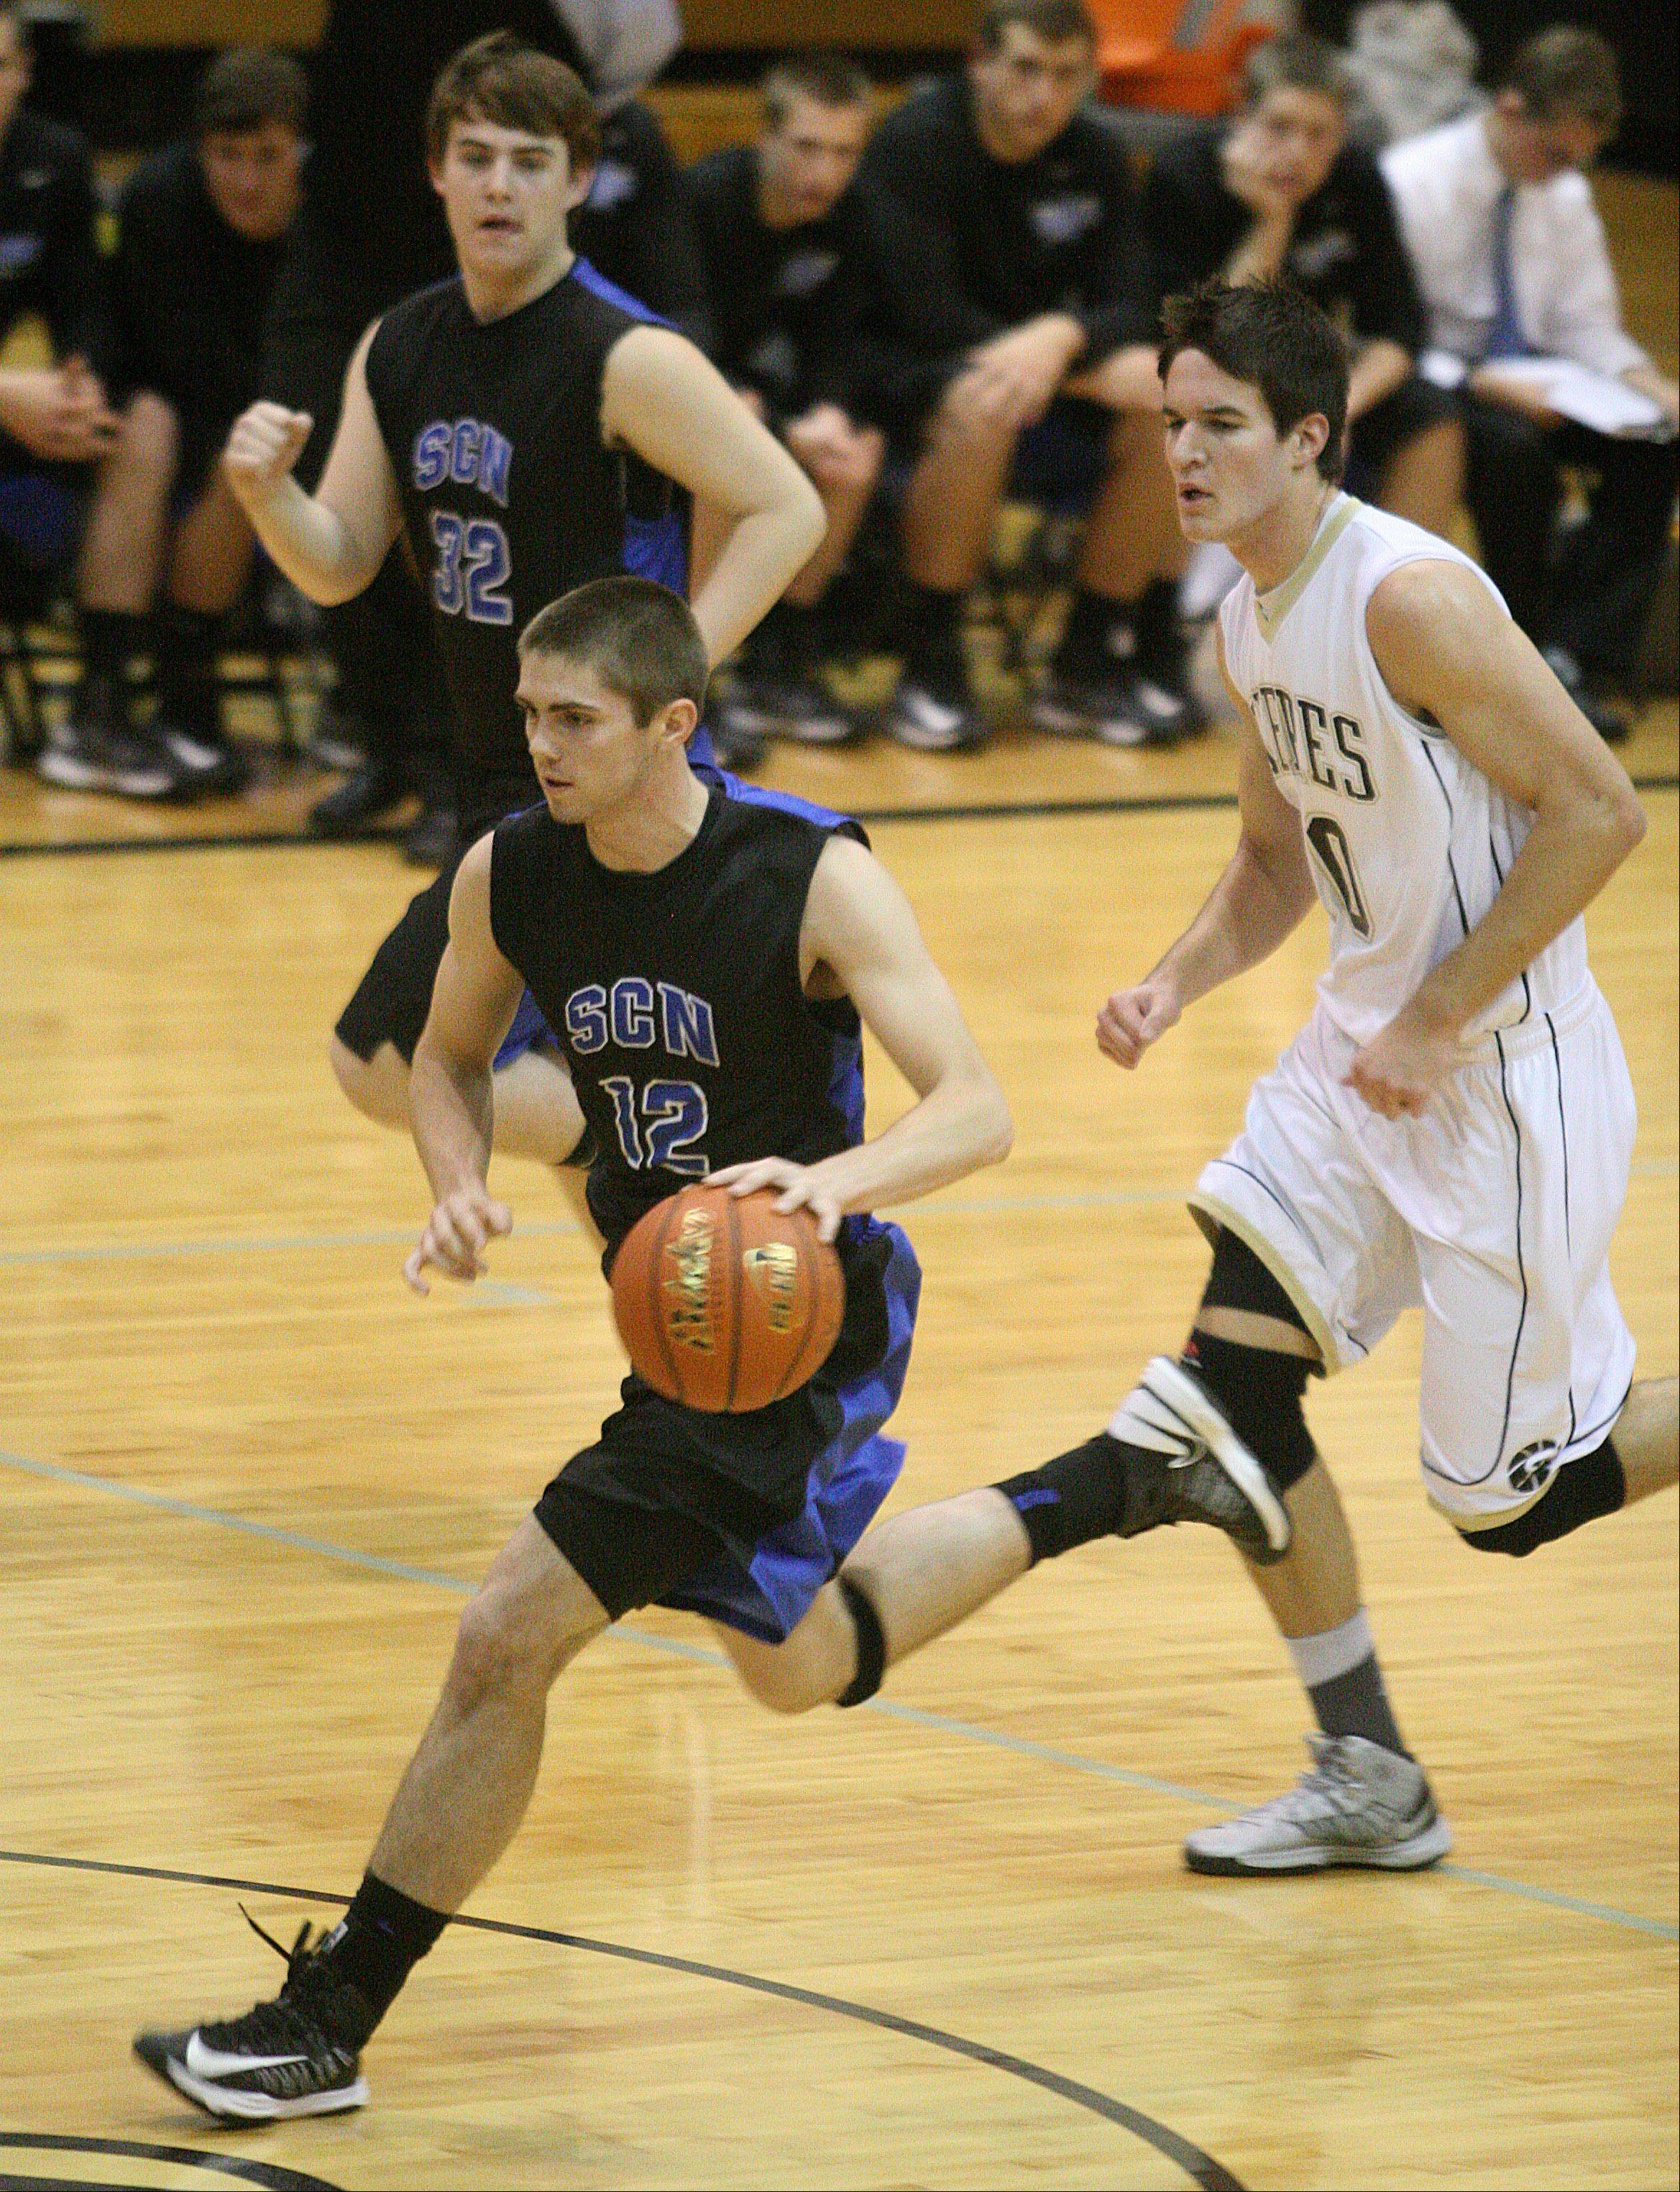 St Charles North's Quinten Payne brings the ball up court.